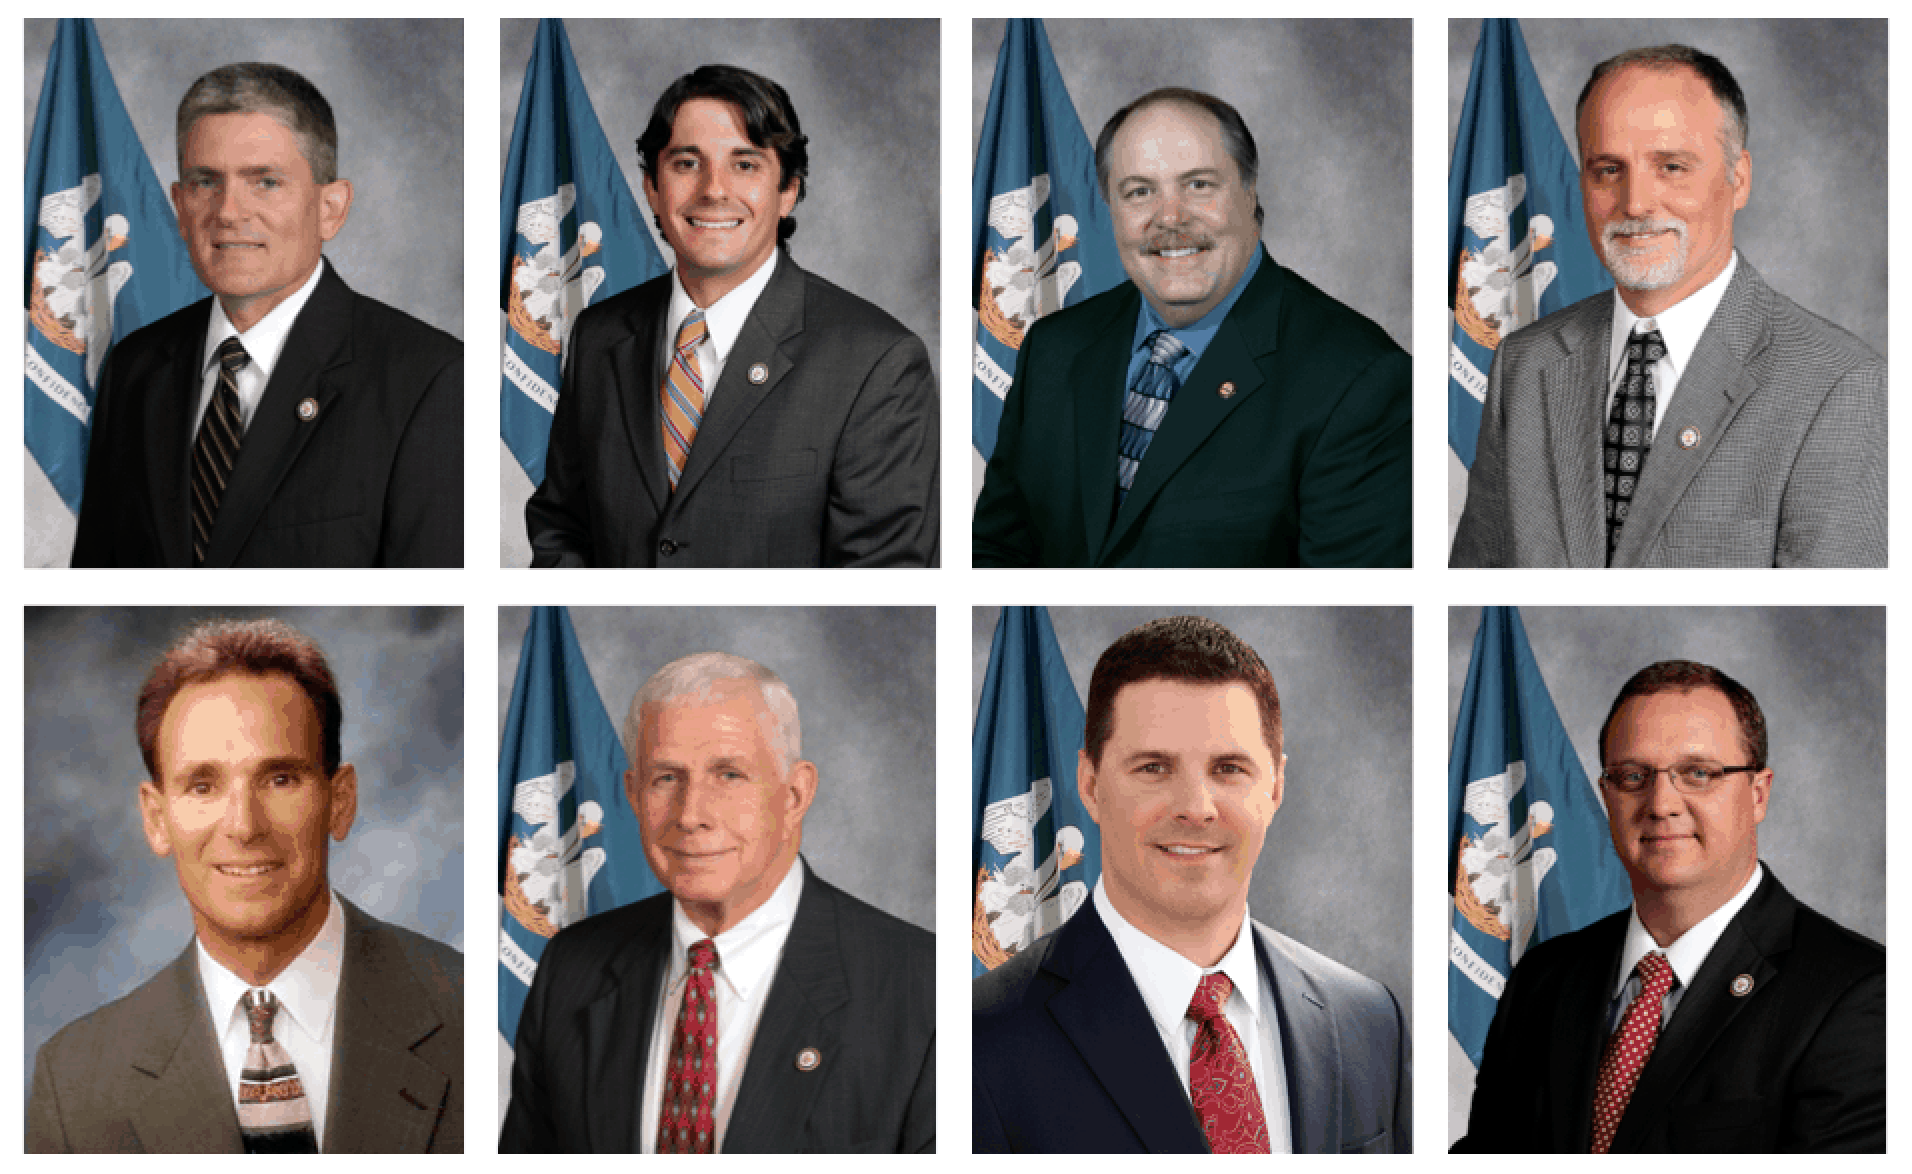 """On Monday, Jindal received a letter from anti-CCSS lawmakers calling on him to pull Louisiana out of PARCC. The letter was signed by (from top left): Rep. Brett Geymann, Rep. Cameron Henry, Rep. Jim Morris, Rep. Bob Hensgens, Rep. Jerome """"Dee"""" Richard, Rep. J. Rogers Pope, Rep. Barry Ivey, and Rep. Kenny Havard."""